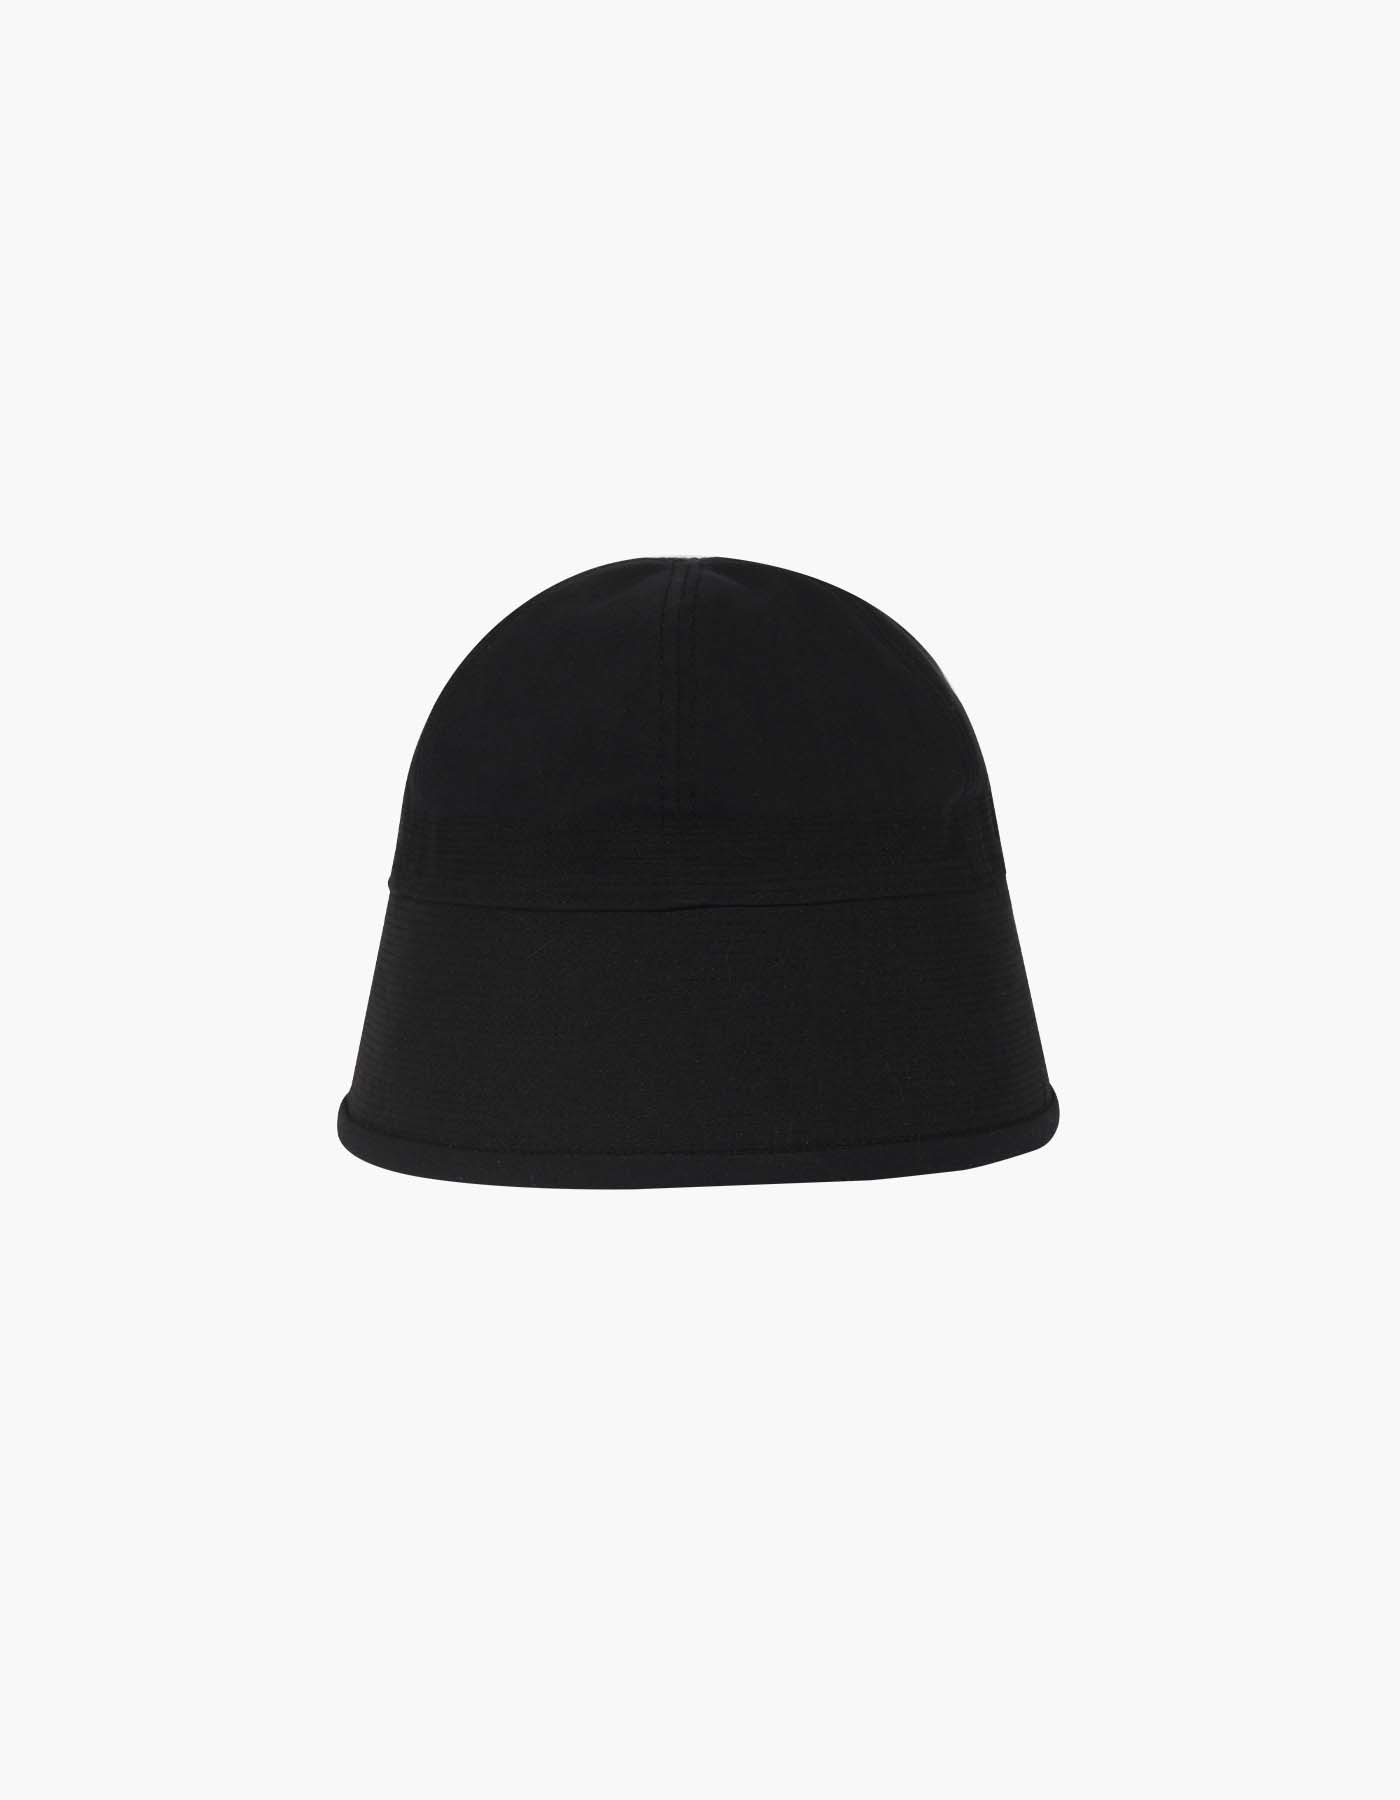 NYLON SAILOR HAT / BLACK